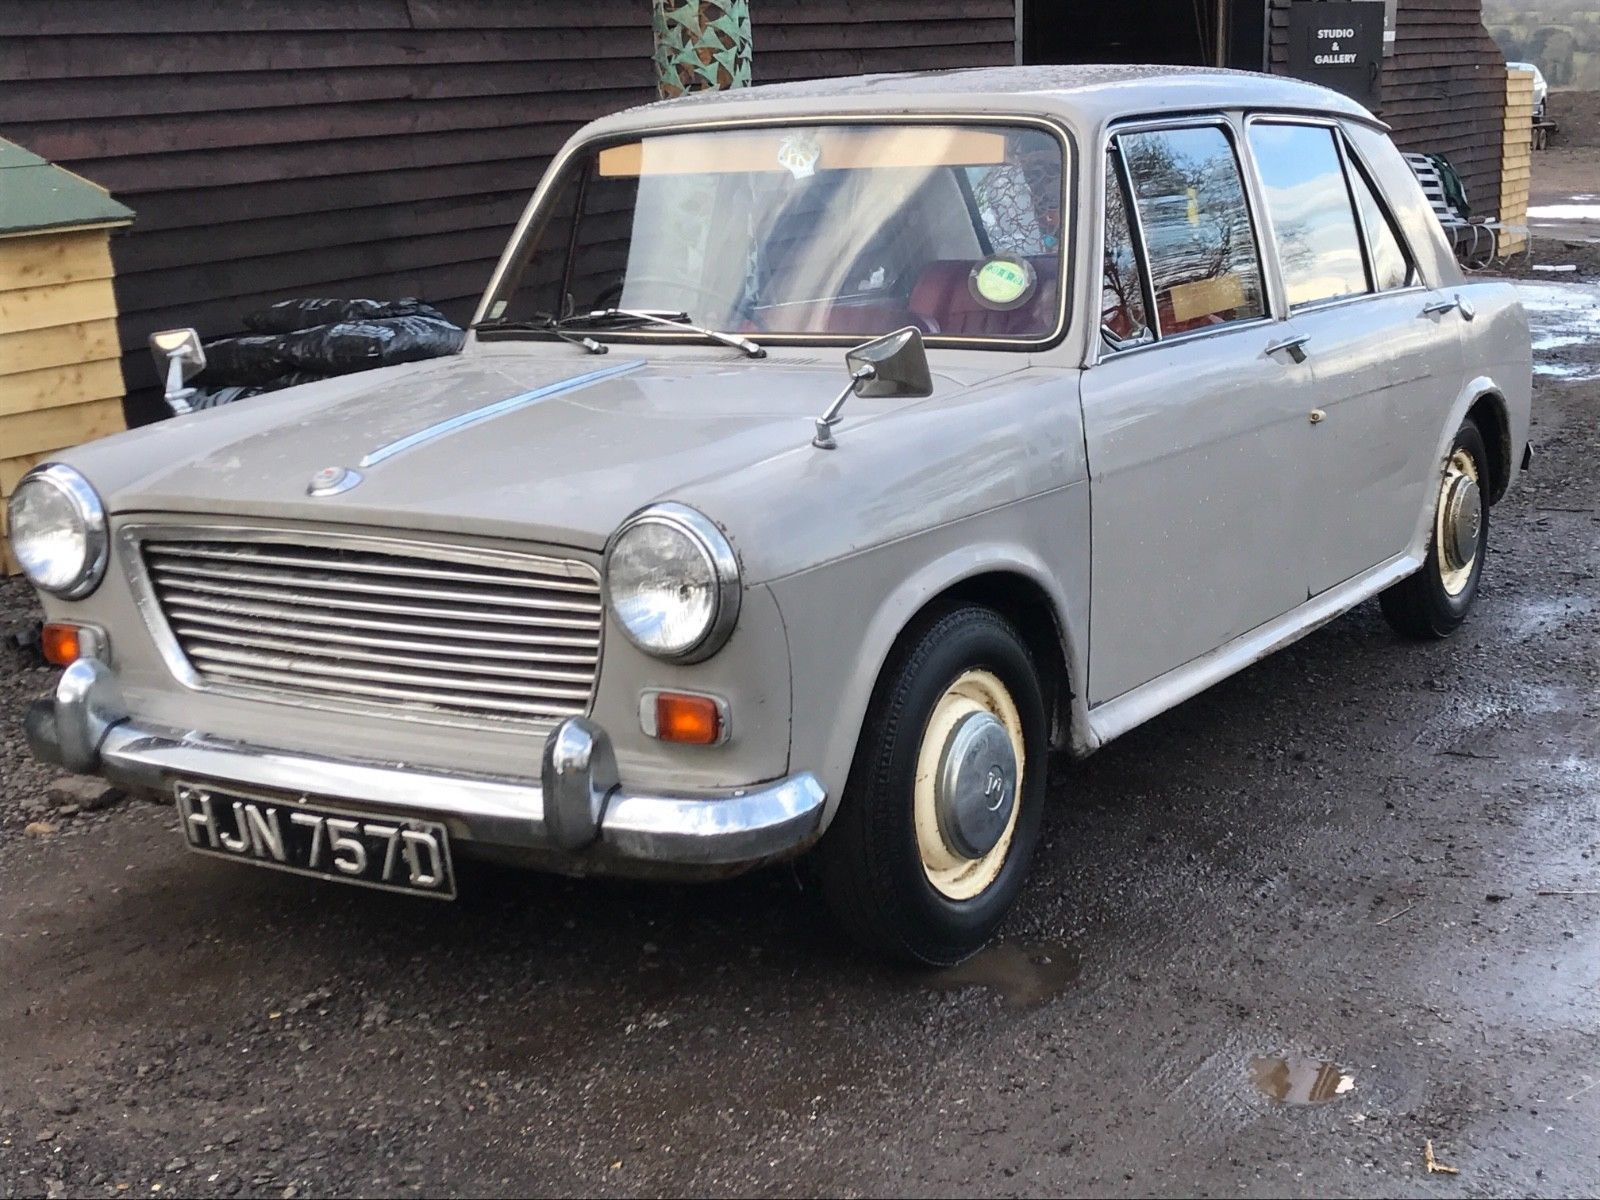 Ebay Barn Find 1966 Austin 1100 Red Leather 1 Owner Genuine 28k Miles Classiccars Cars British Cars Cars Uk Classic Cars